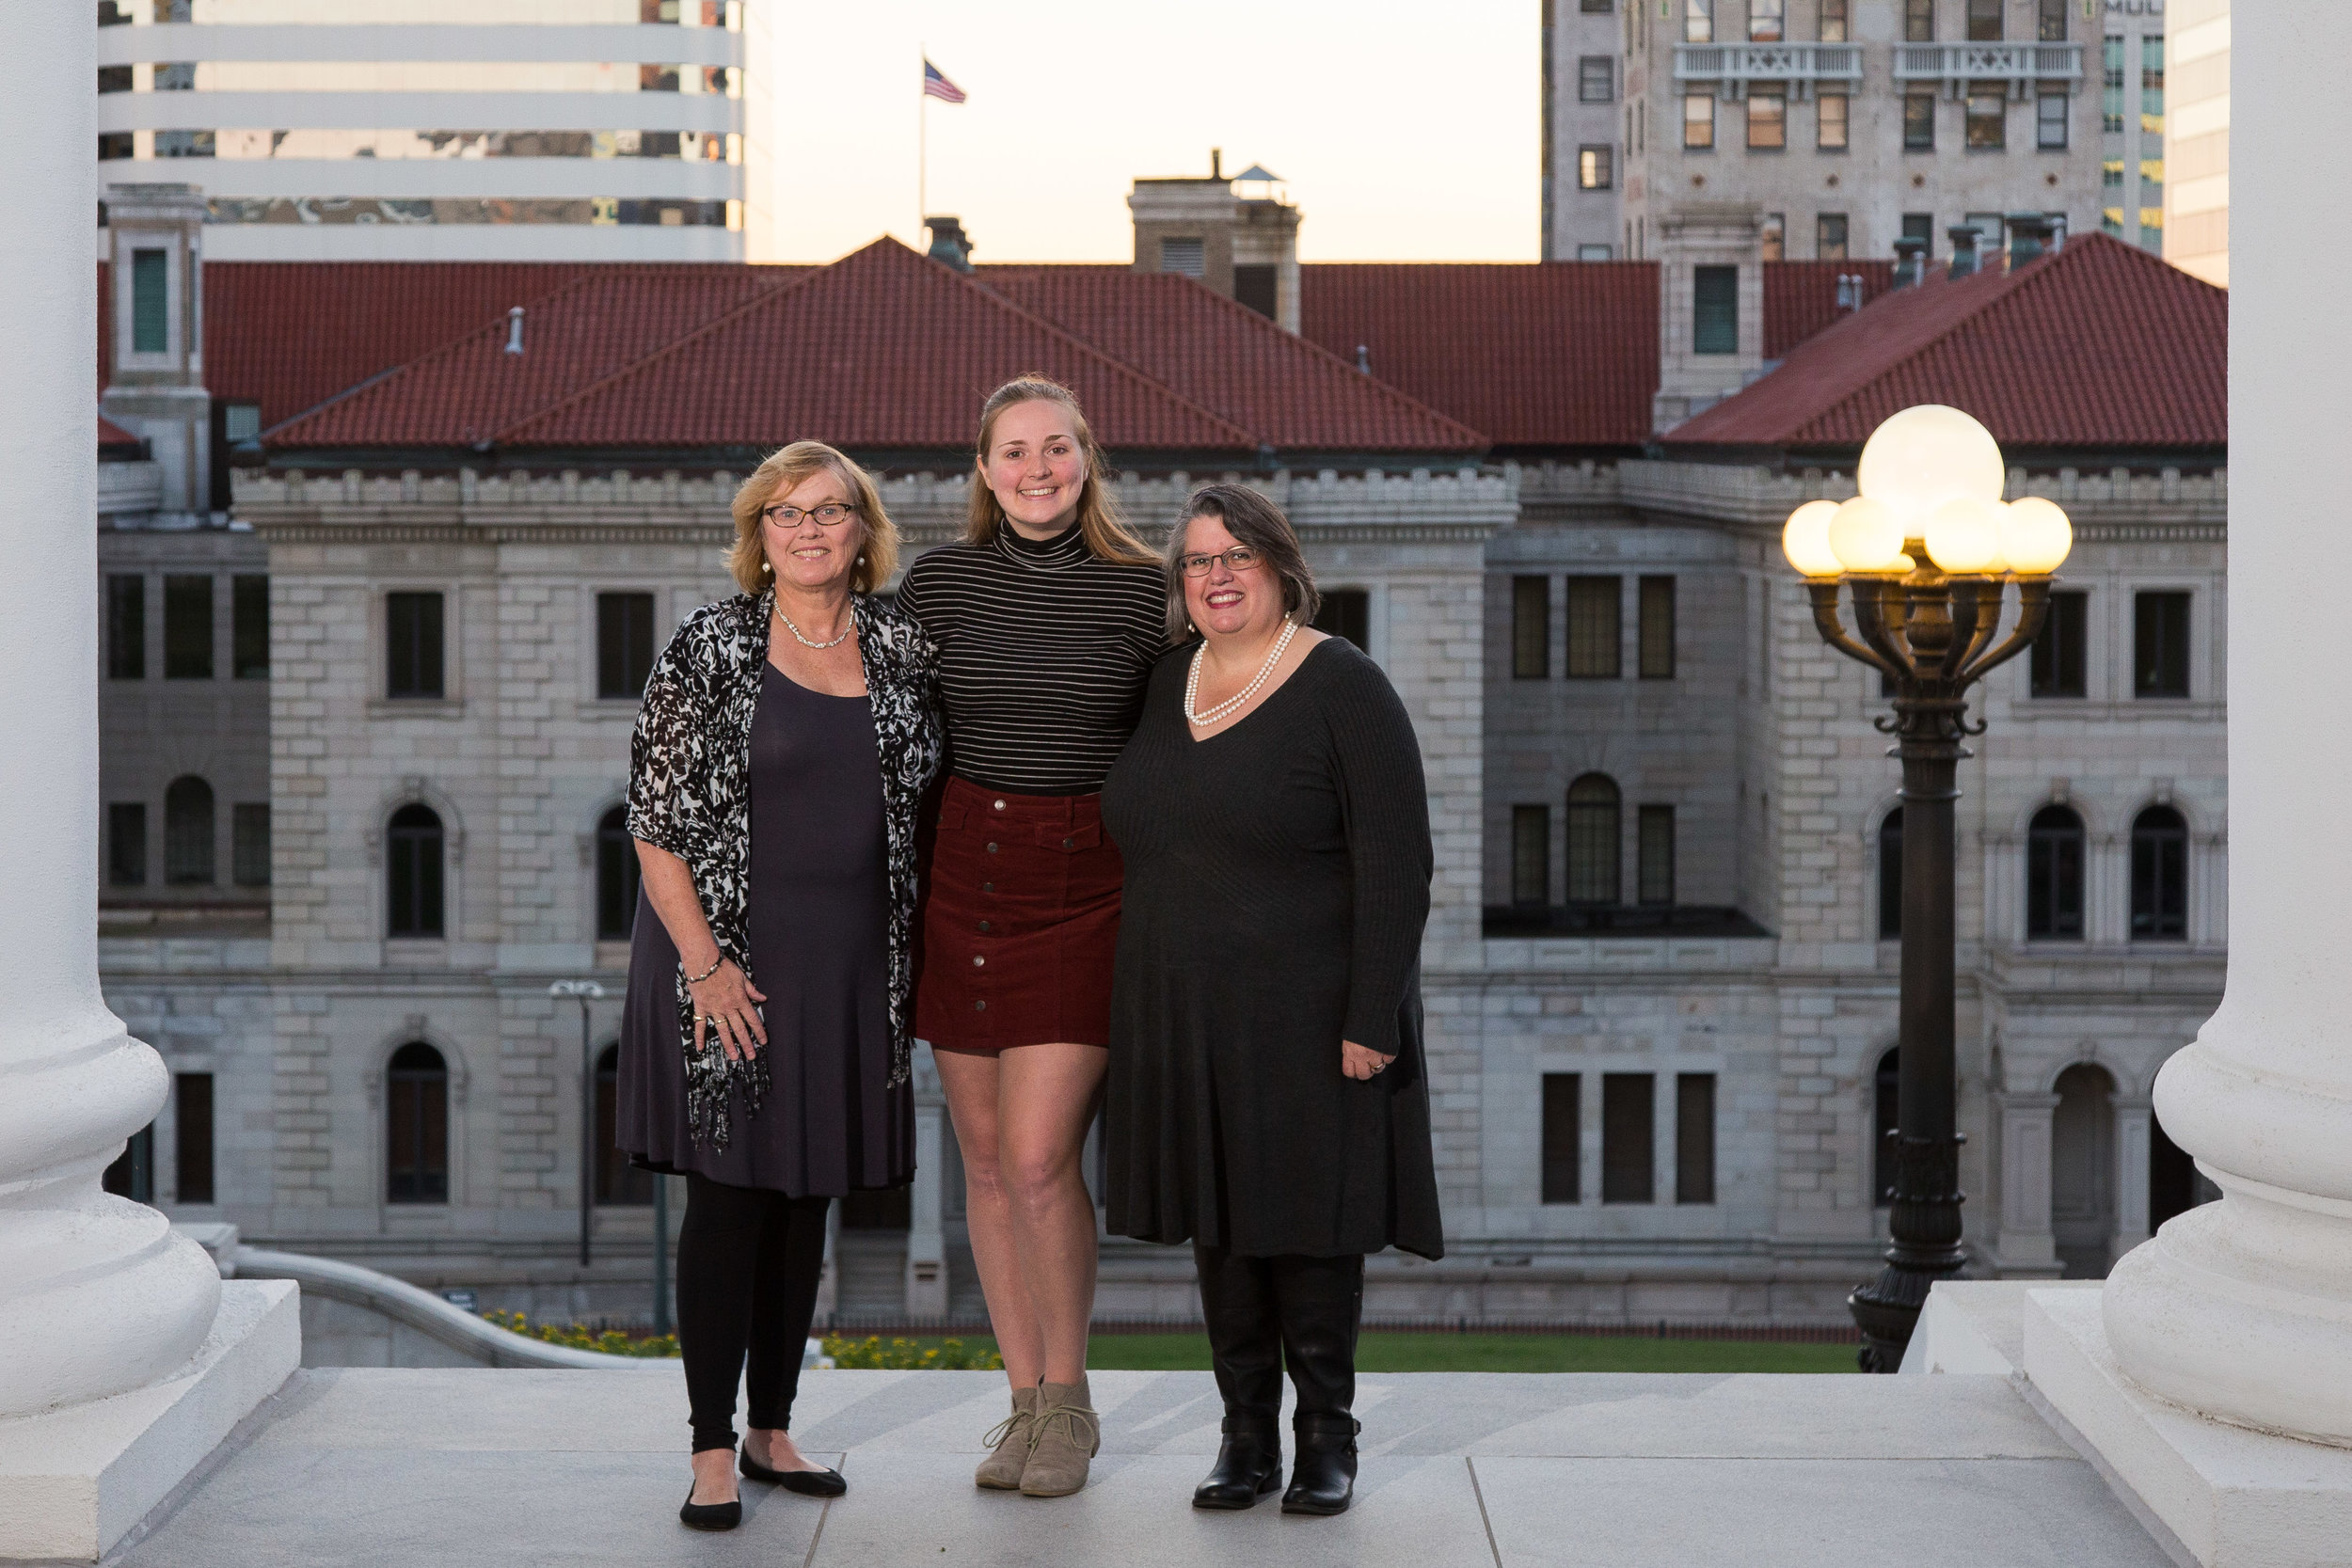 Photographed in Capitol Square, Richmond City by Michael Simon Photography